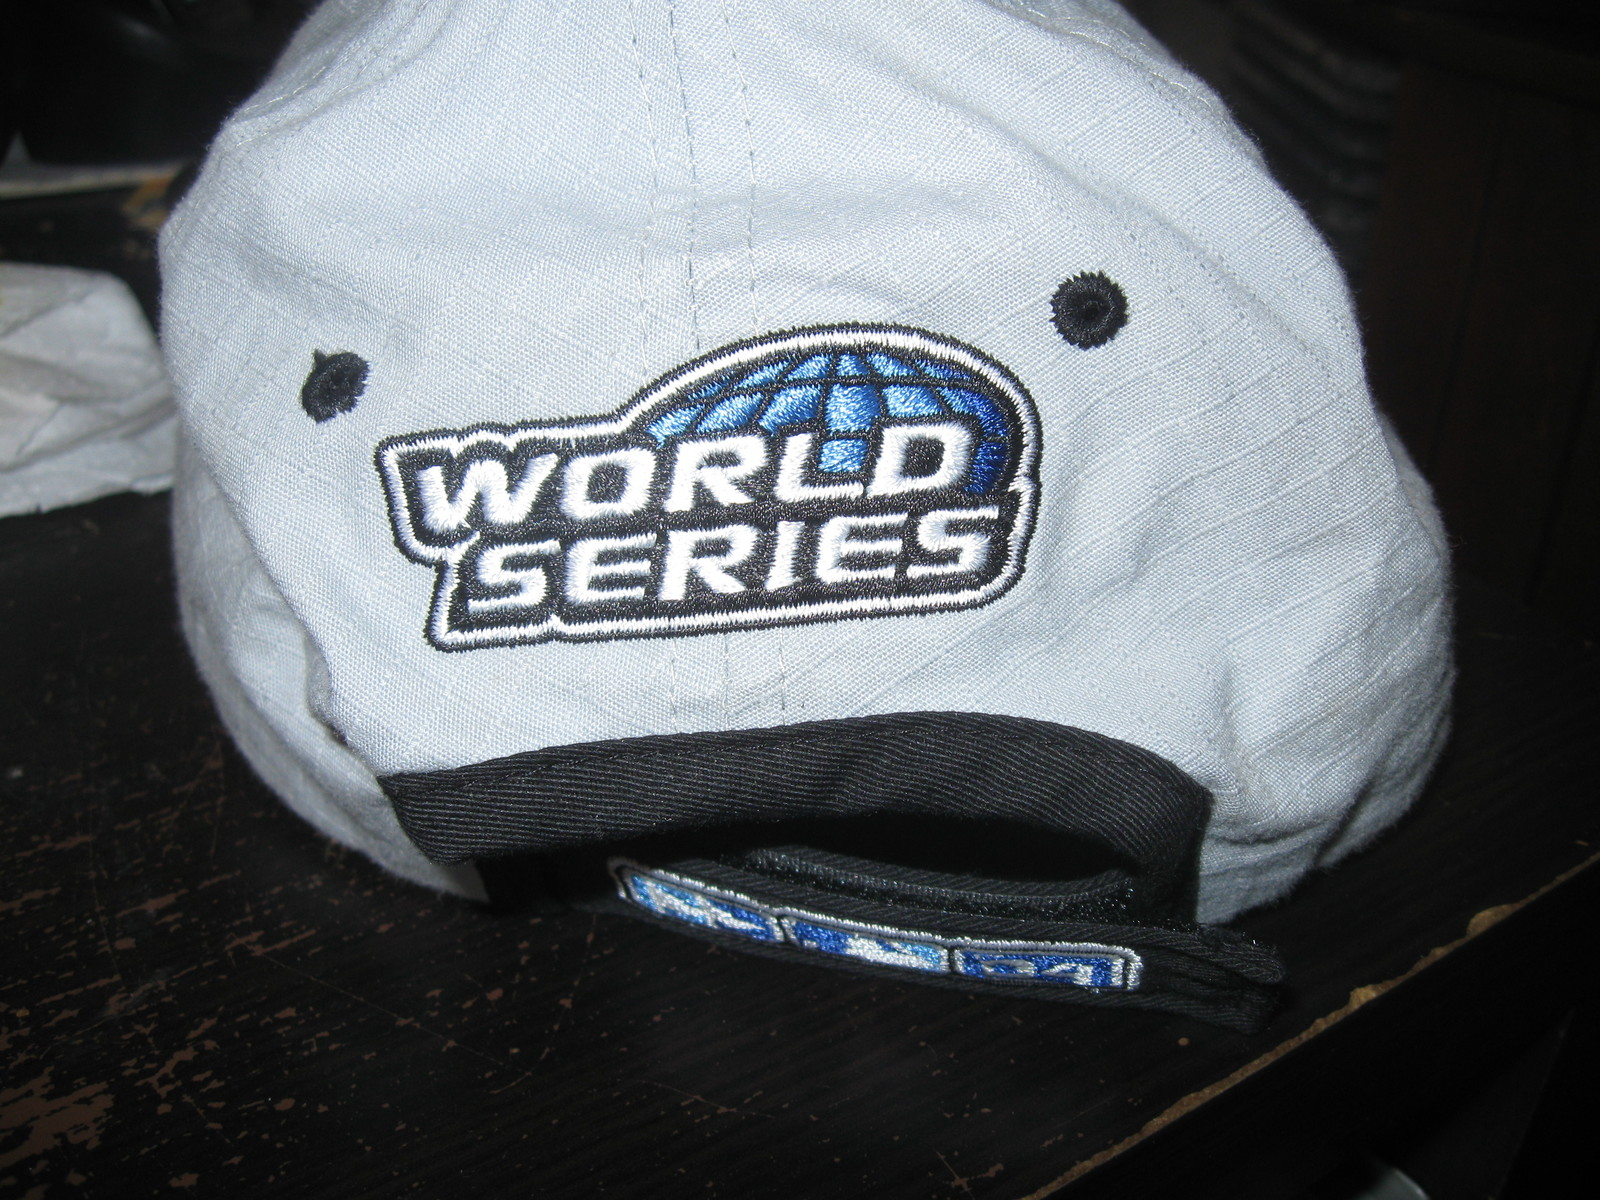 CARDINALS 2004 NATIONAL LEAGUE CHAMPIONS  HAT EMBRIODED!PLAYOFFS!